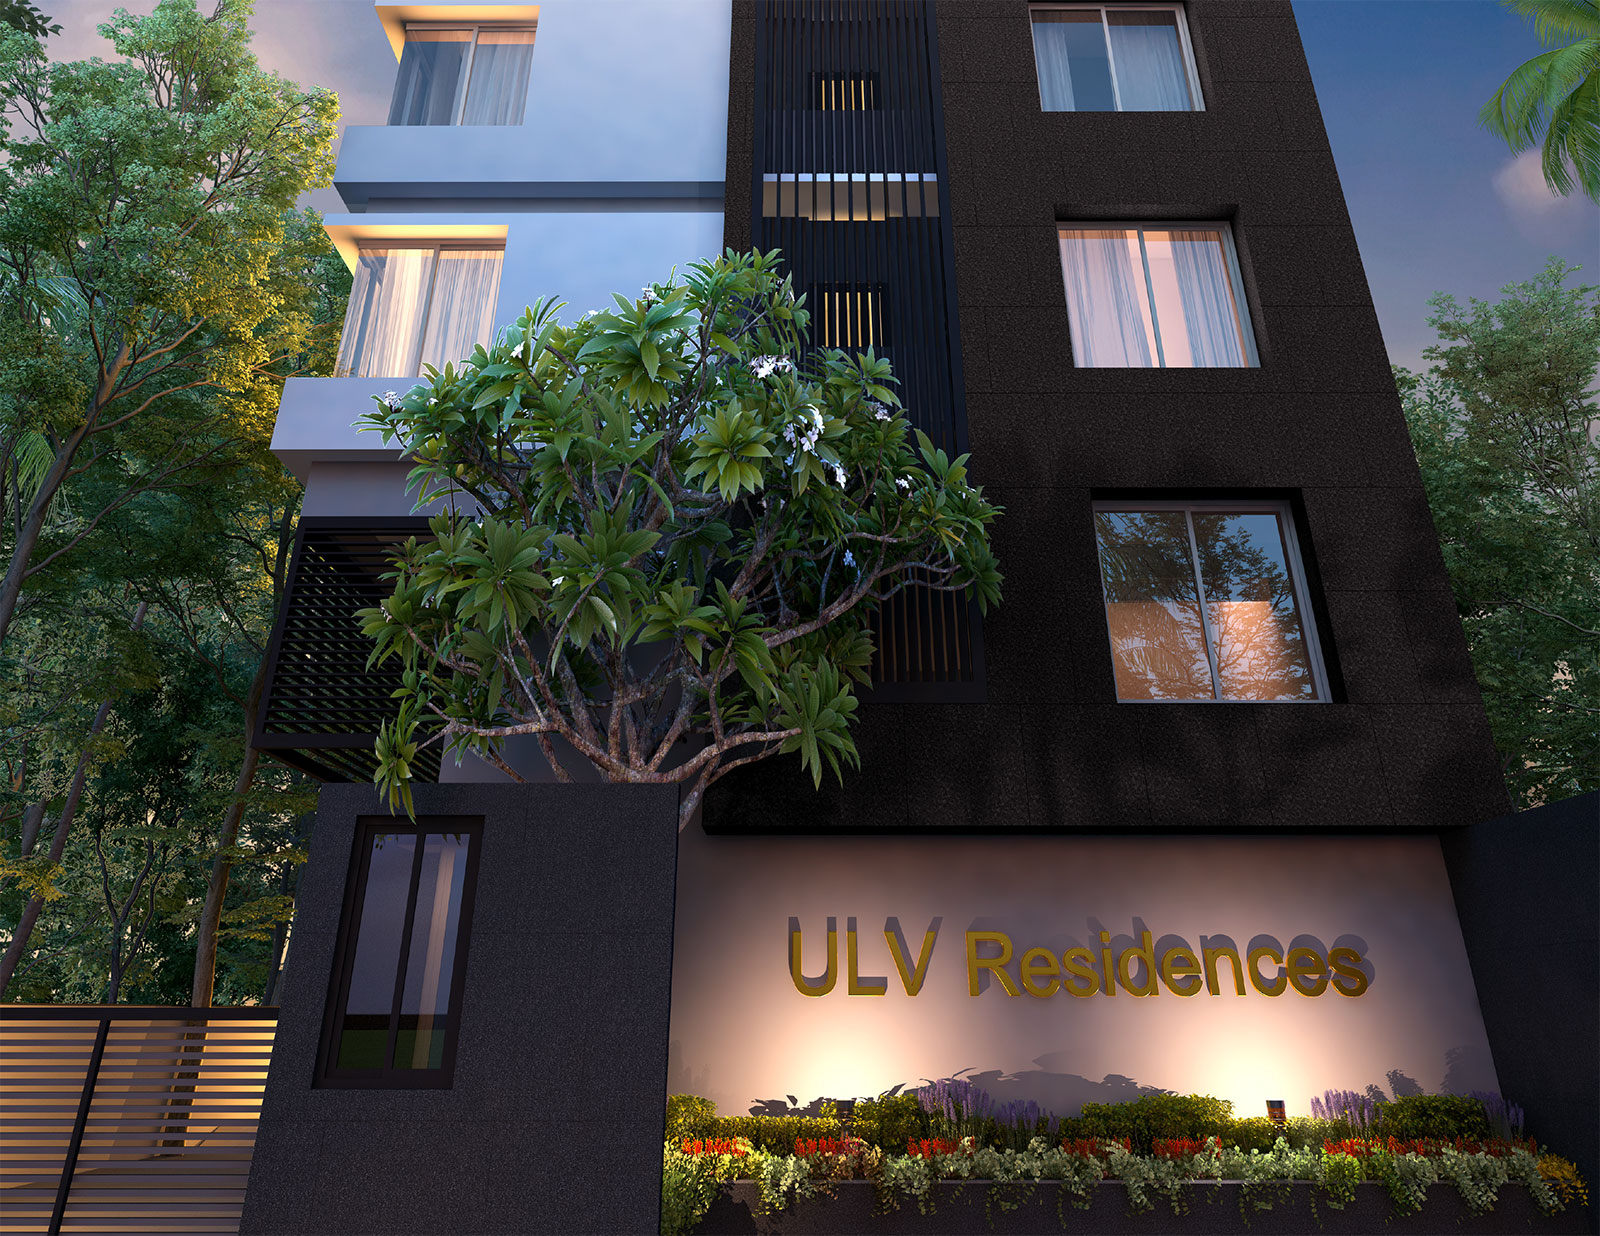 FOR SALE : 1 BEDROOM APARTMENT | MODEL COLONY |  ULV RESIDENCES, PUNE